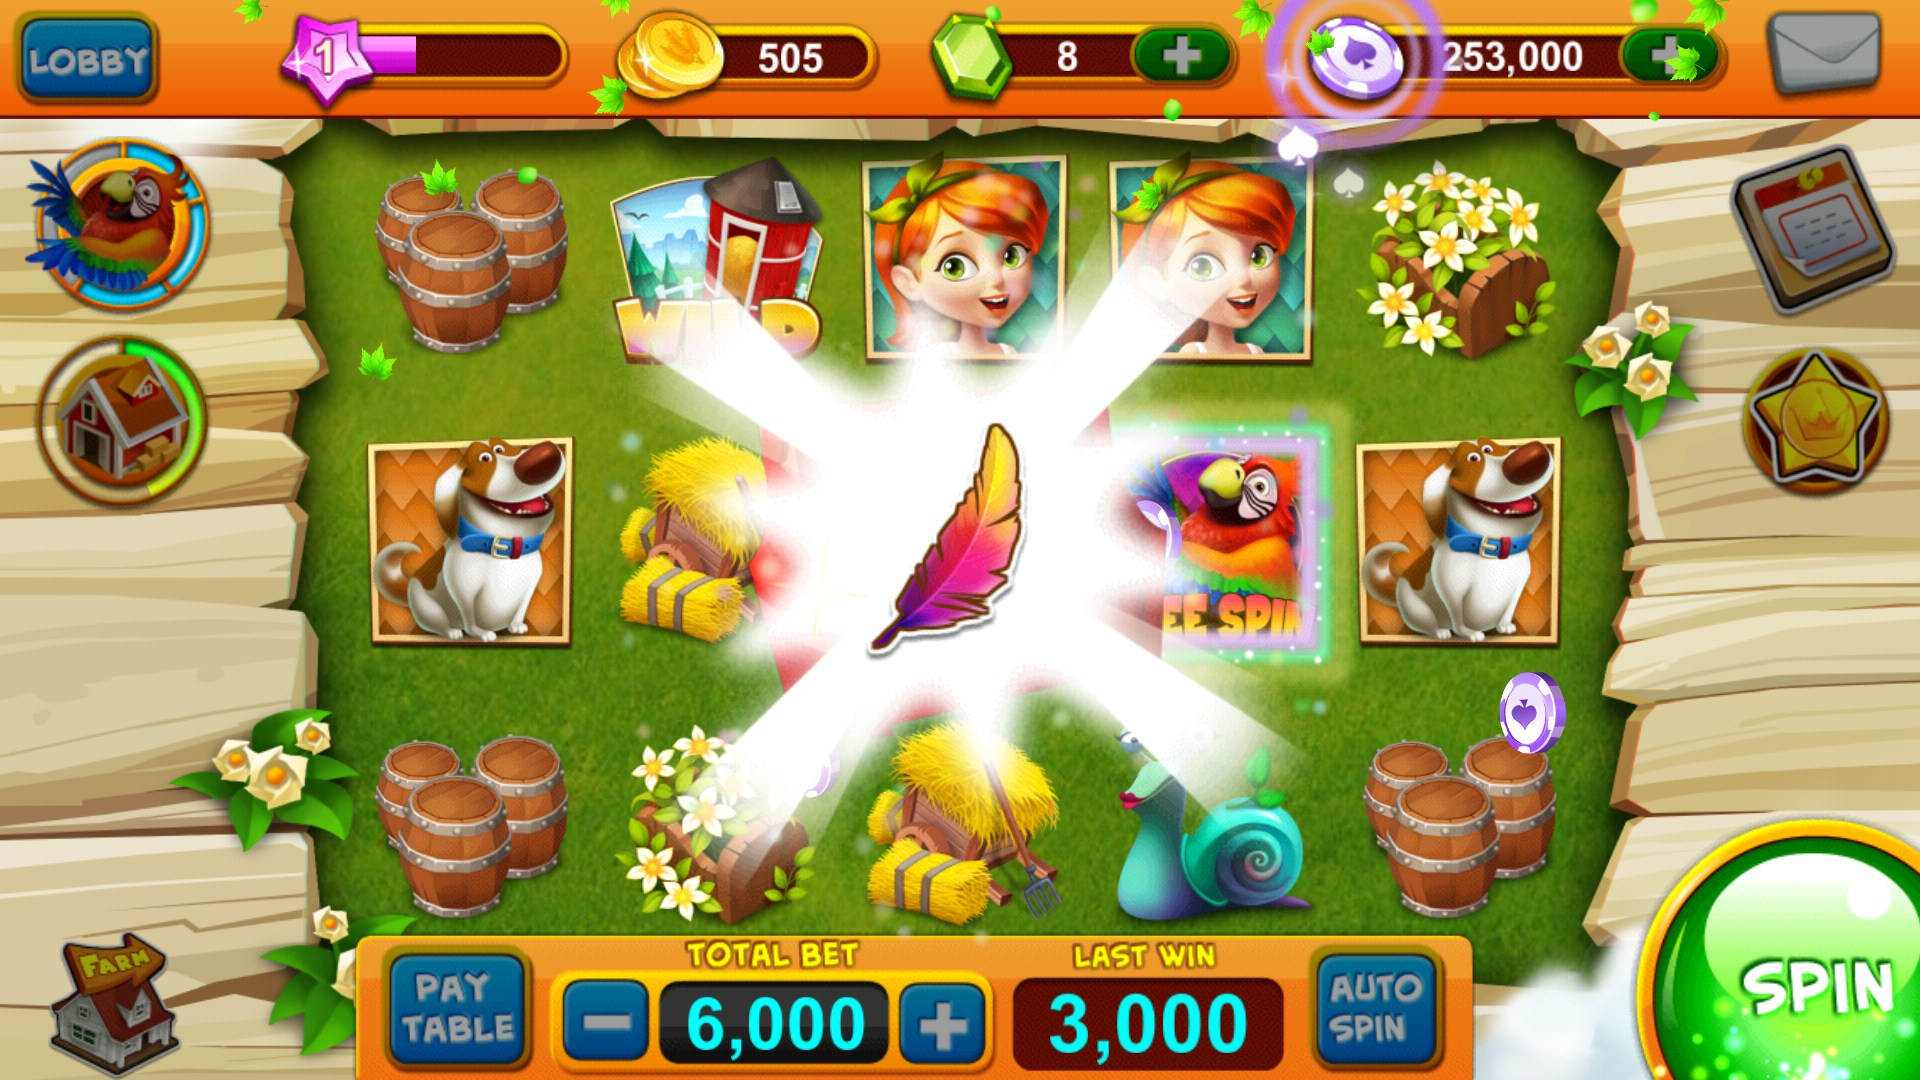 Poker chinês 2 apk